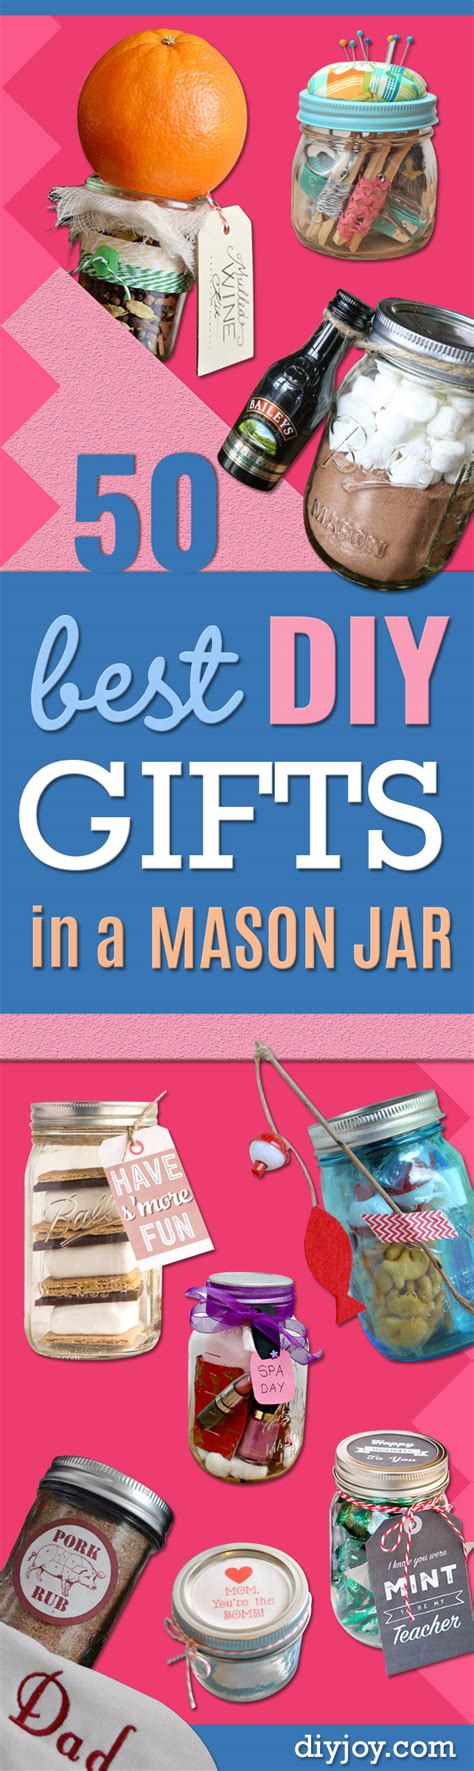 gifts for your best 50 best diy gifts in jars Diy